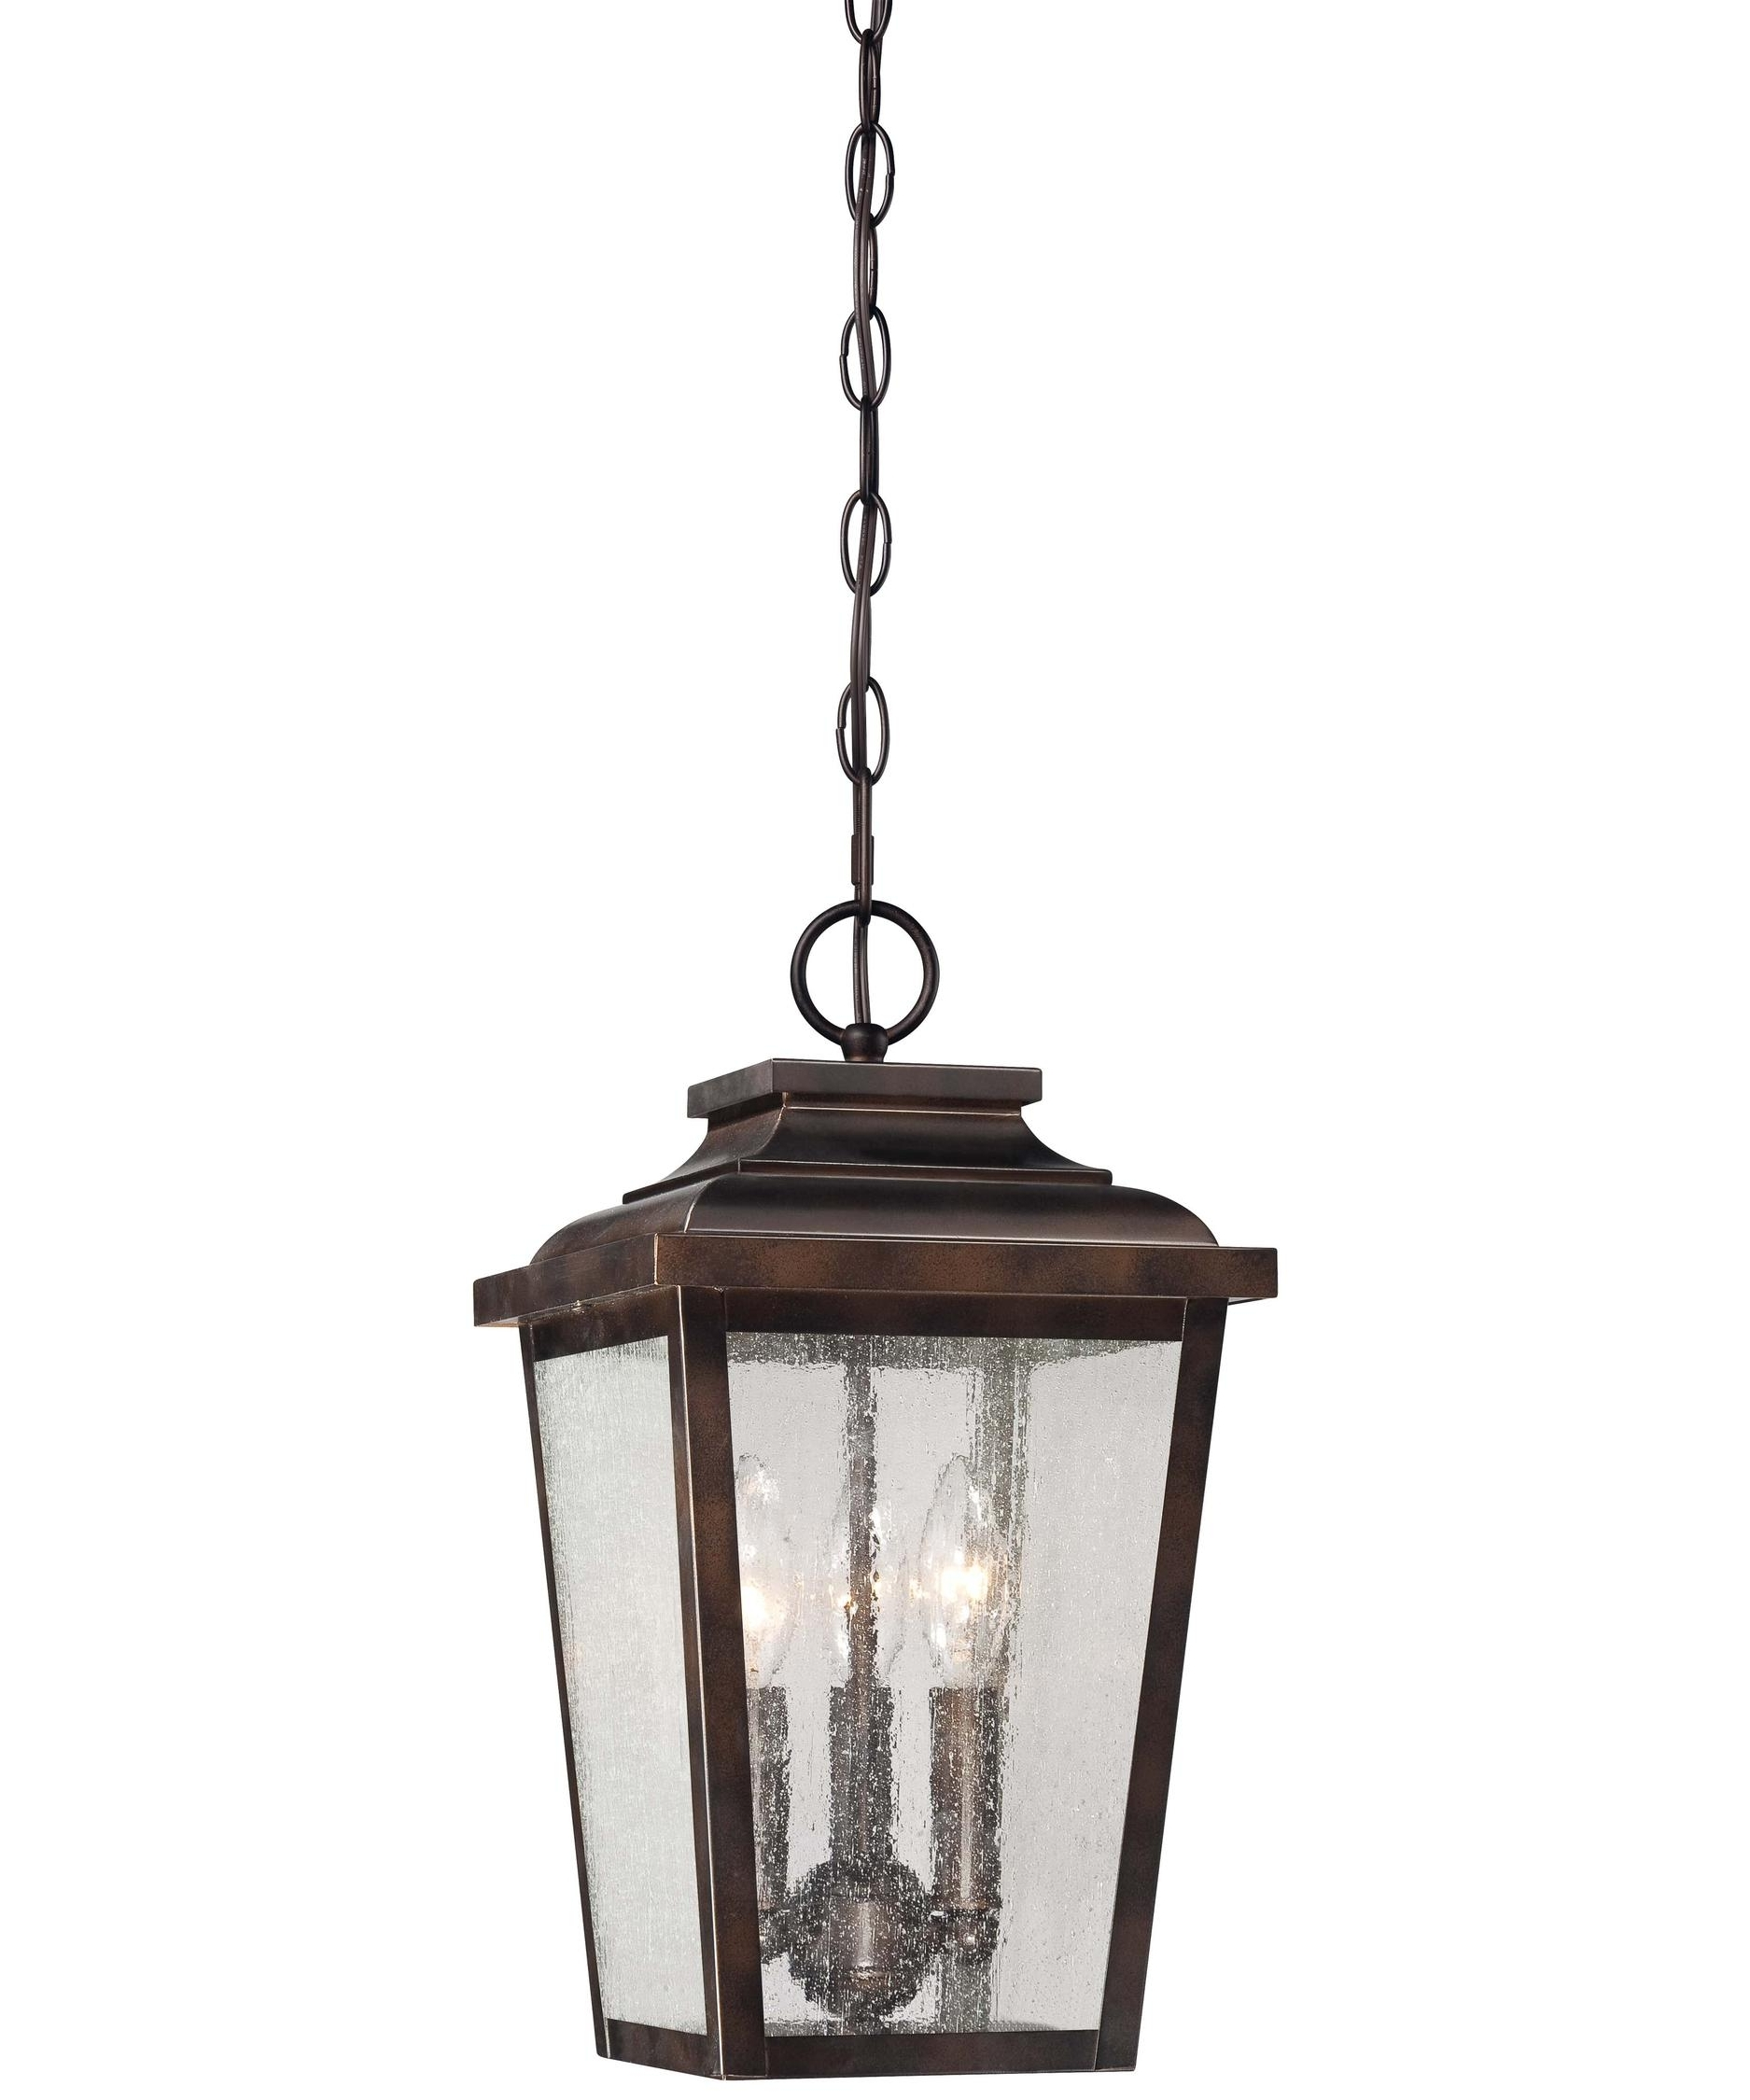 2018 Minka Lavery 72174 Irvington Manor 9 Inch Wide 3 Light Outdoor Within Outdoor Hanging Lights (Gallery 3 of 20)